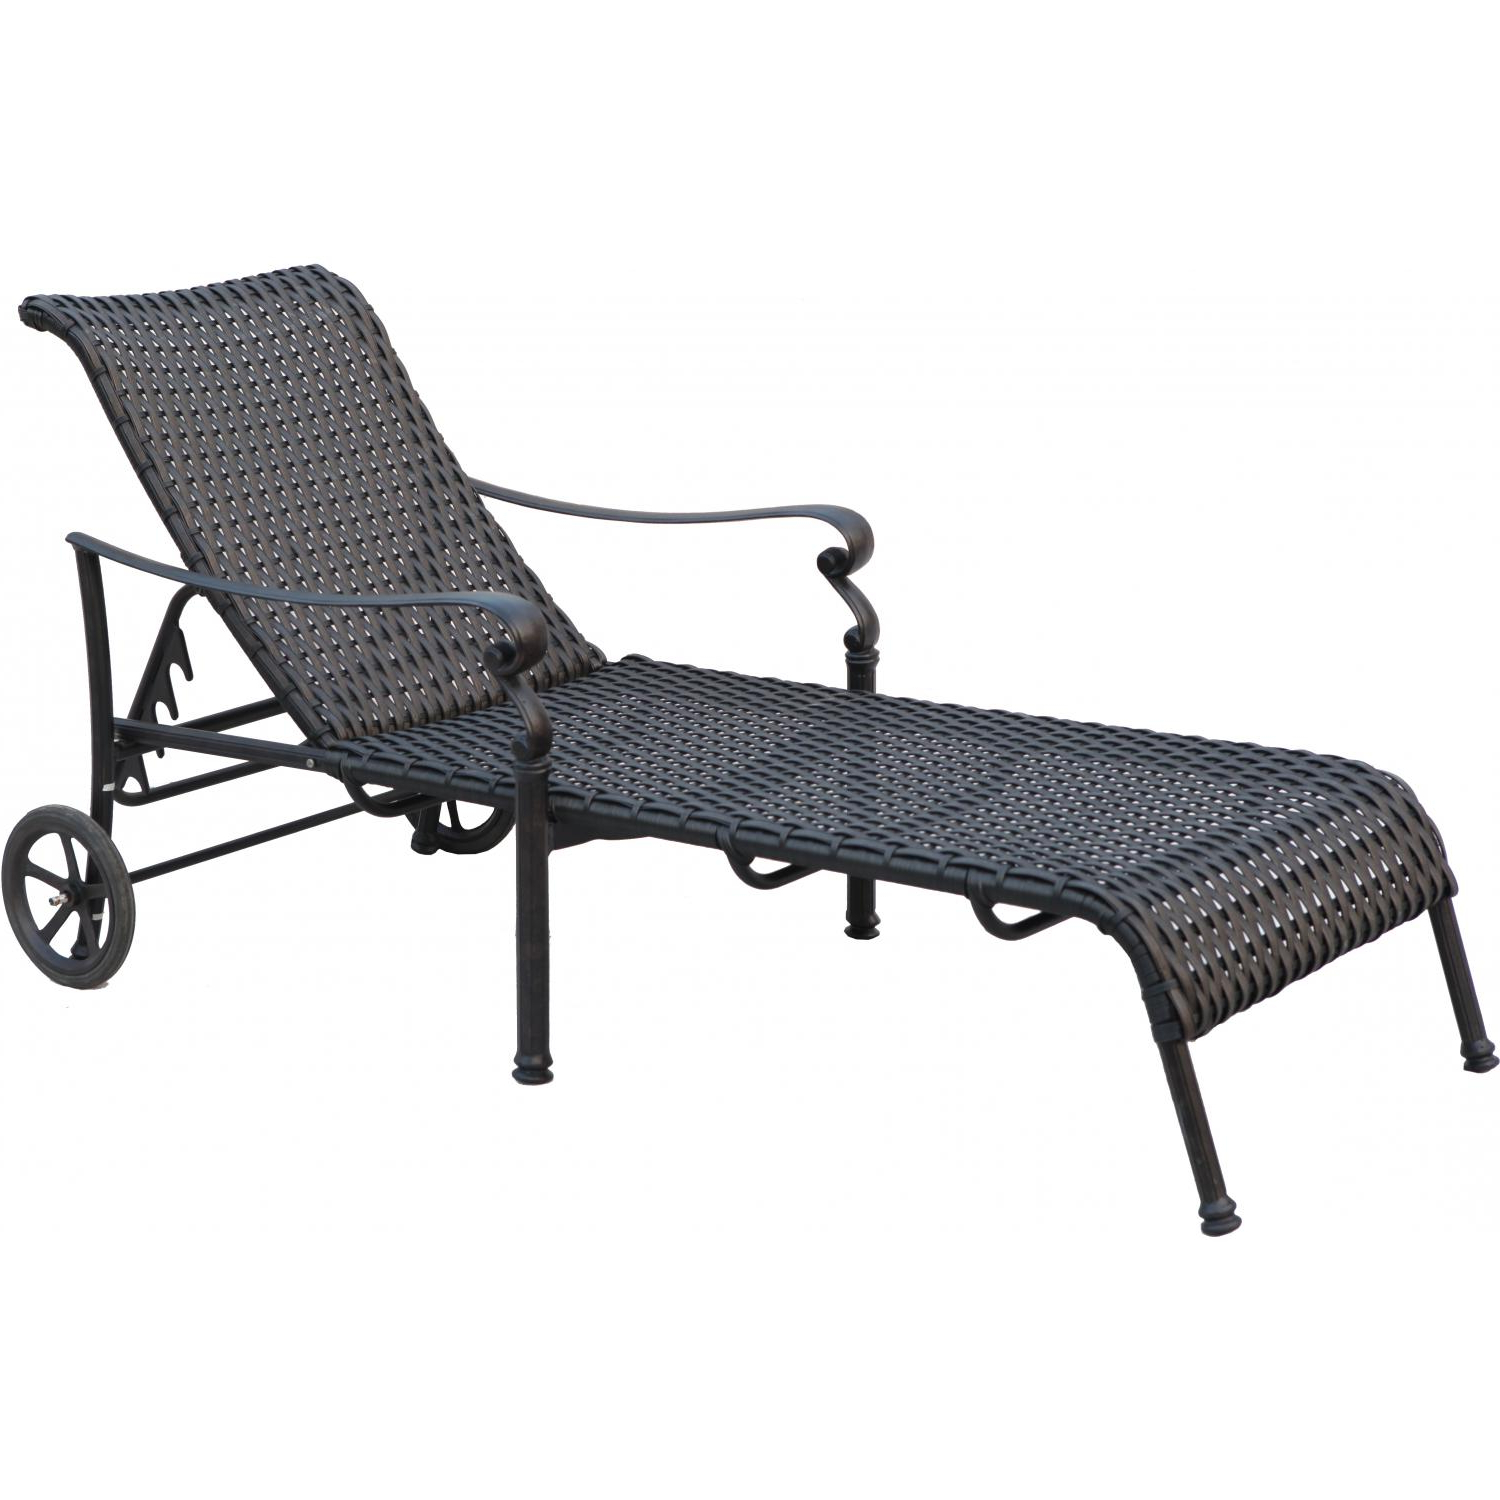 Resin Wicker Aluminum Multi Position Chaise Lounges Inside Most Recently Released Darlee Victoria Resin Wicker Patio Chaise Lounge (Set Of 2) (View 17 of 25)